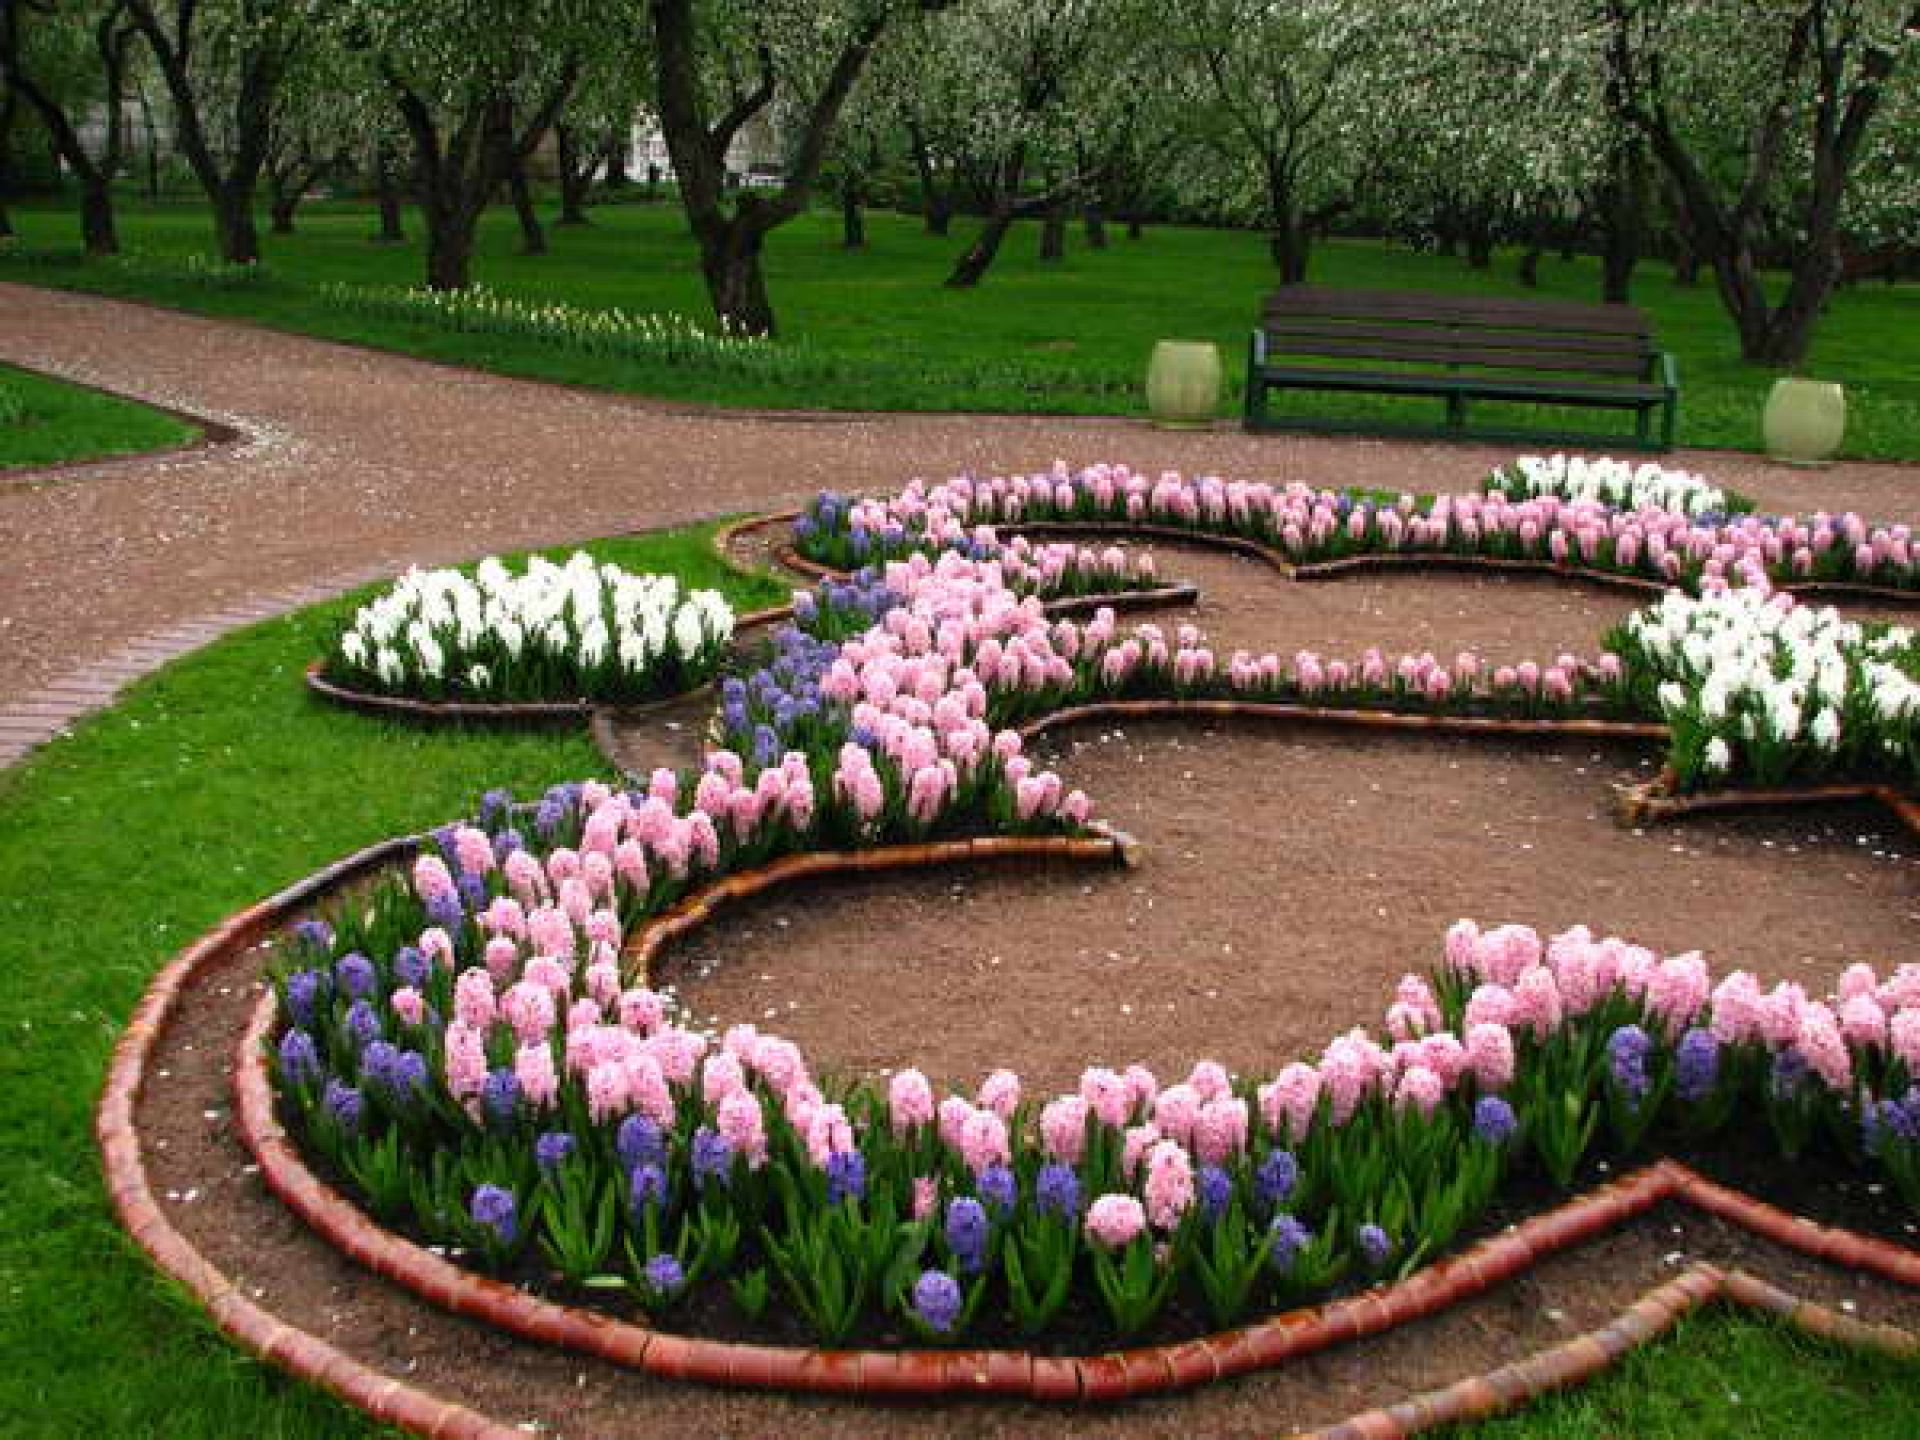 Amazing Design Of The Flower Bed Designs With Pink And White Daisy Flower Ideas With Beauty Shape Of The Bed Ideas